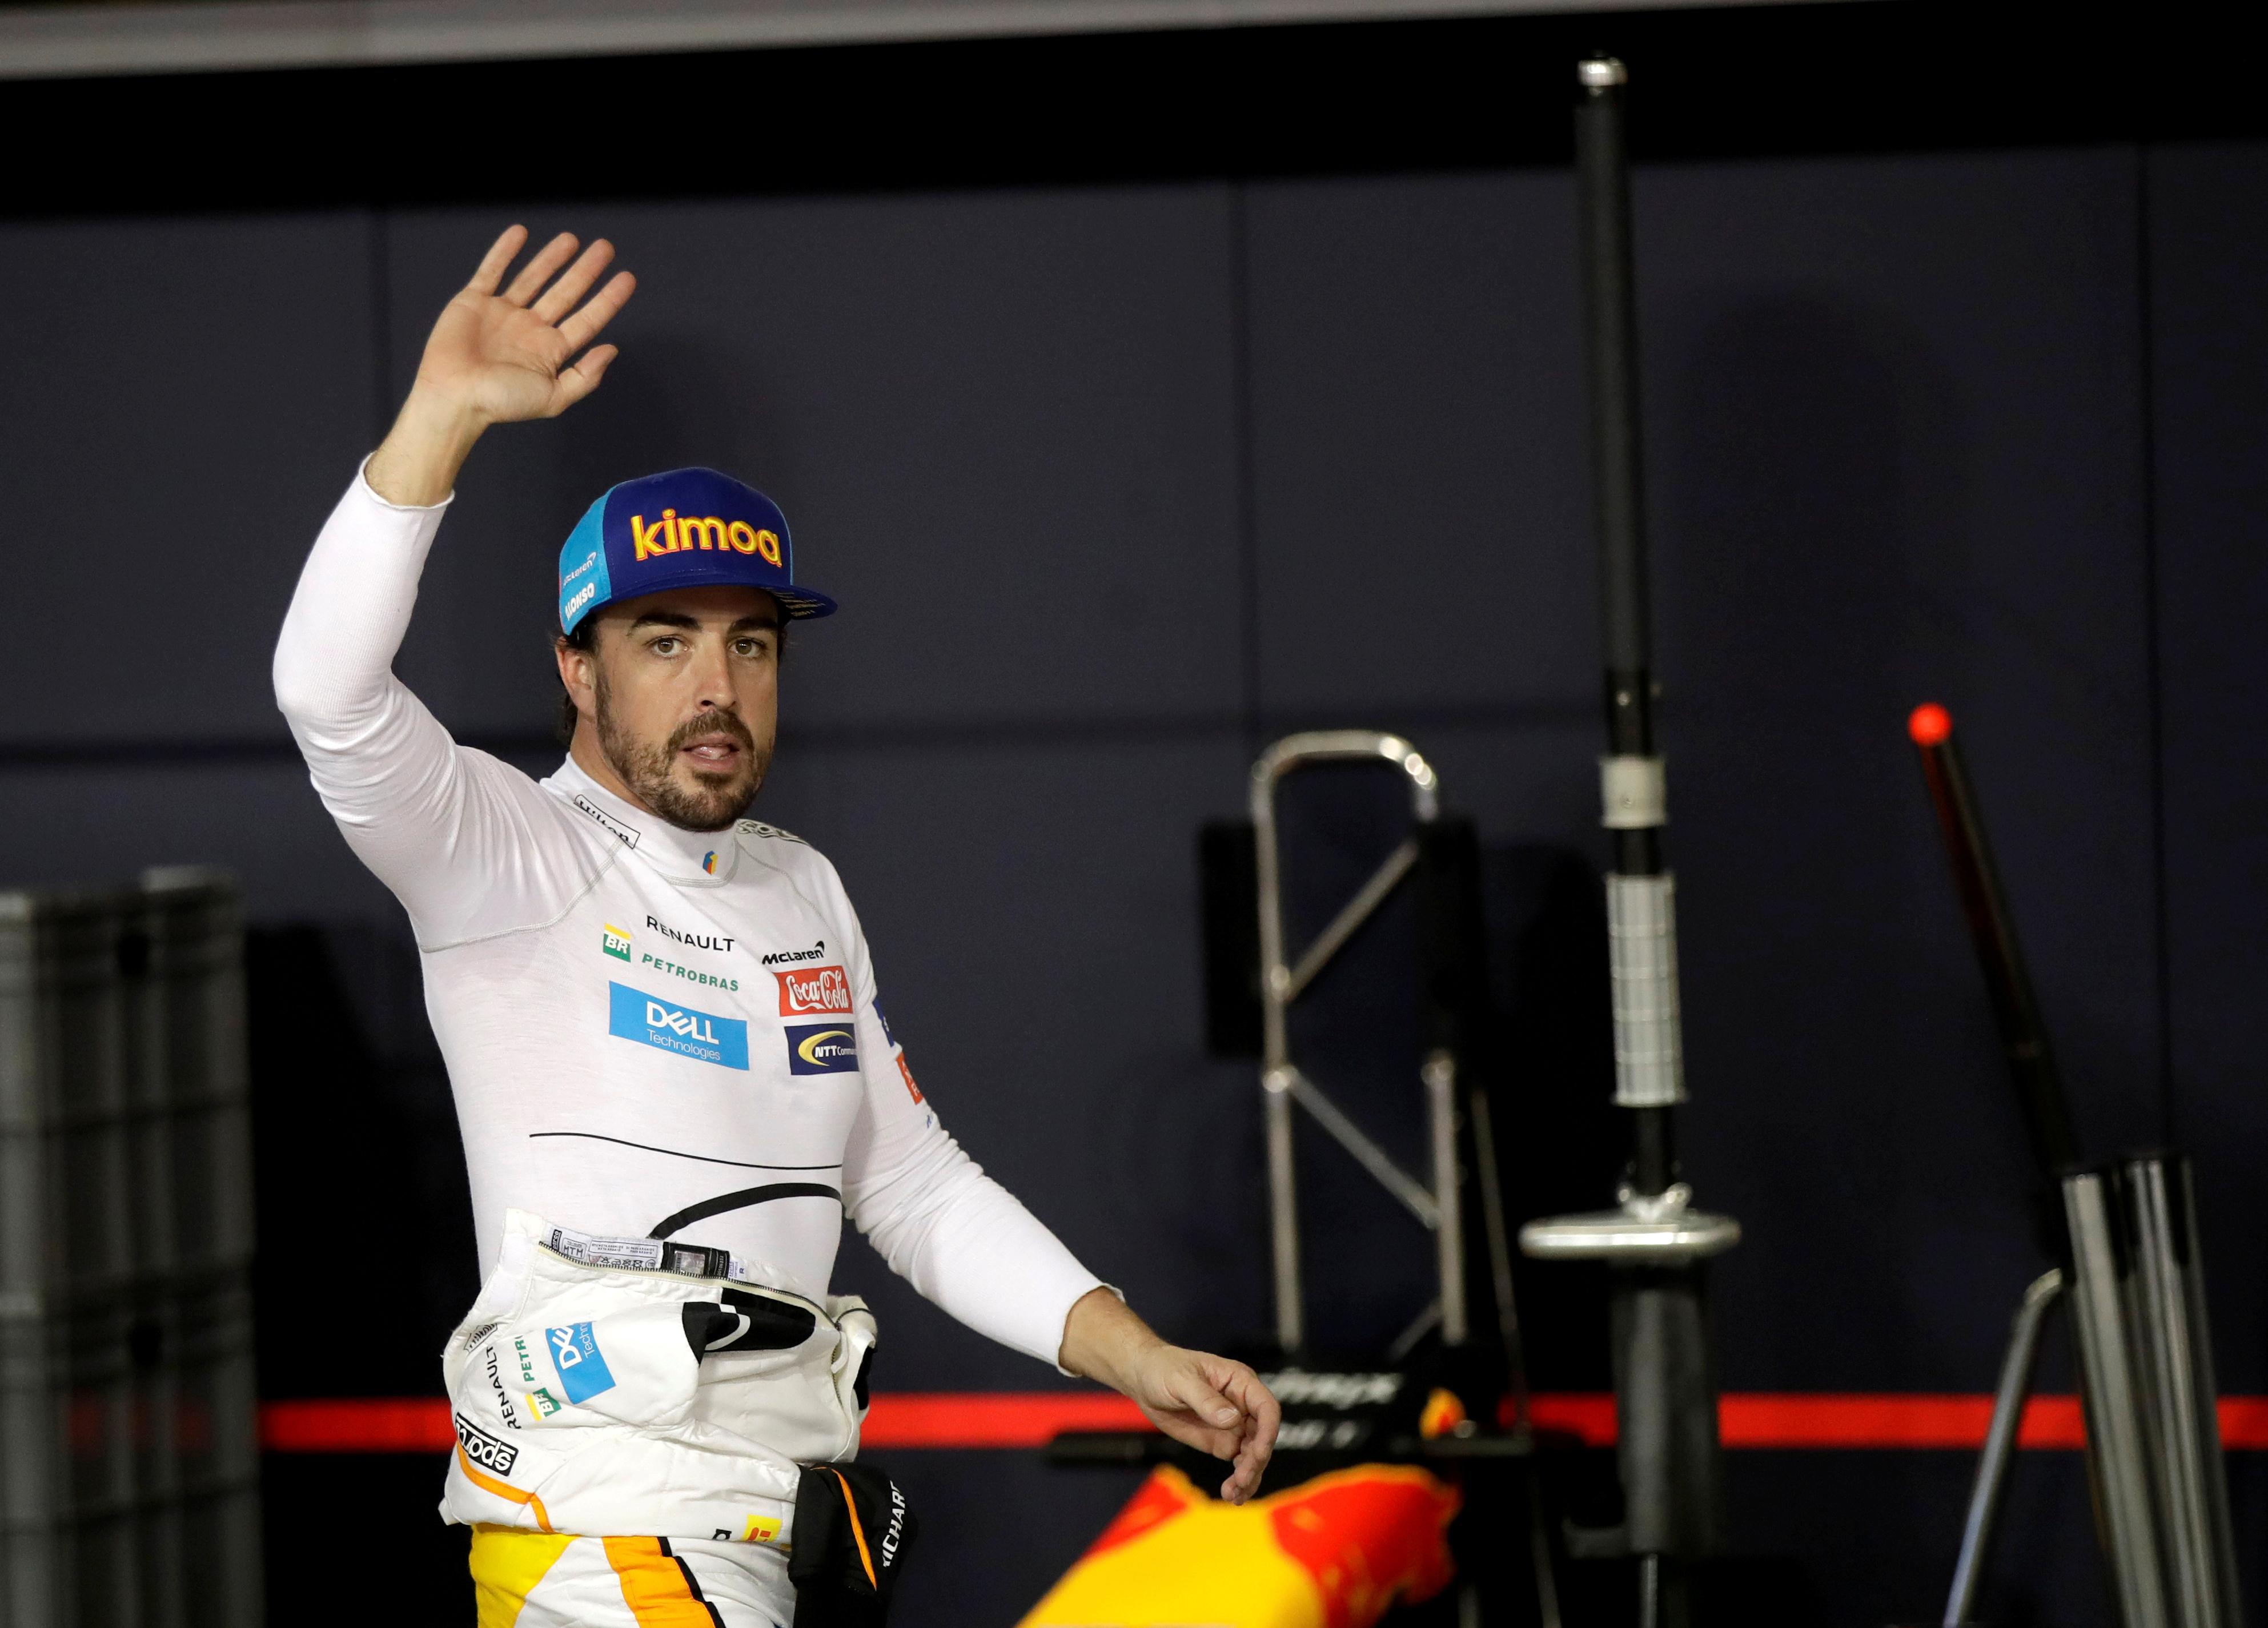 Motor racing: New McLaren a step forward in every aspect, says Alonso